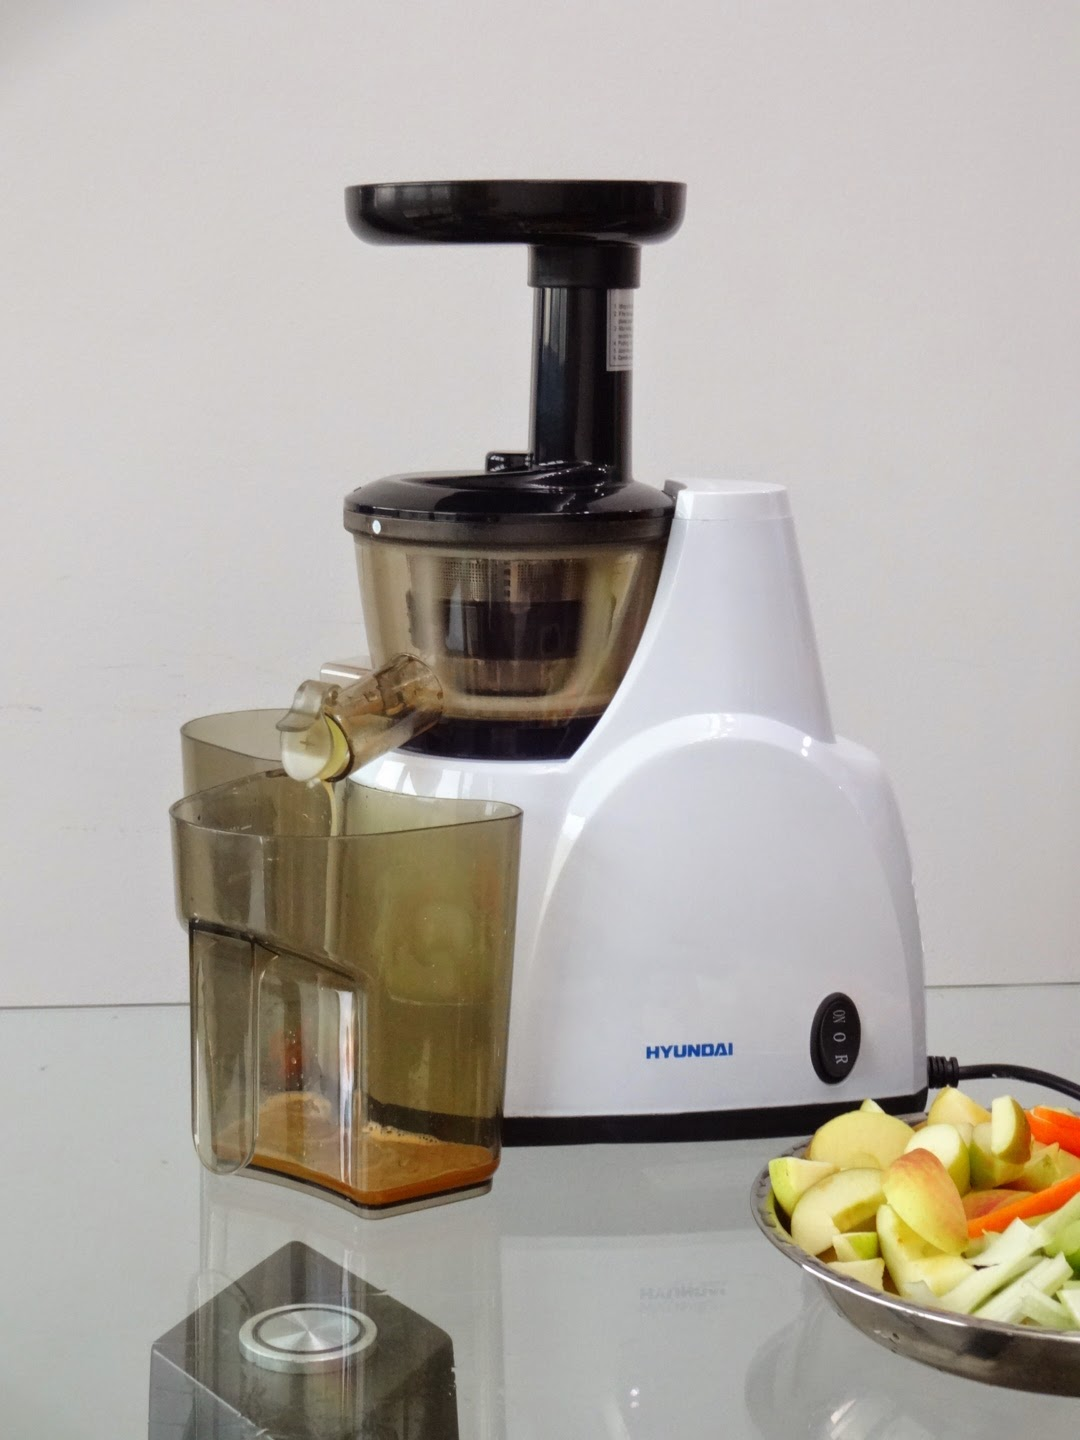 a day in the life of a BE@RBRICK: Hyundai Slow Juicer [Updated]